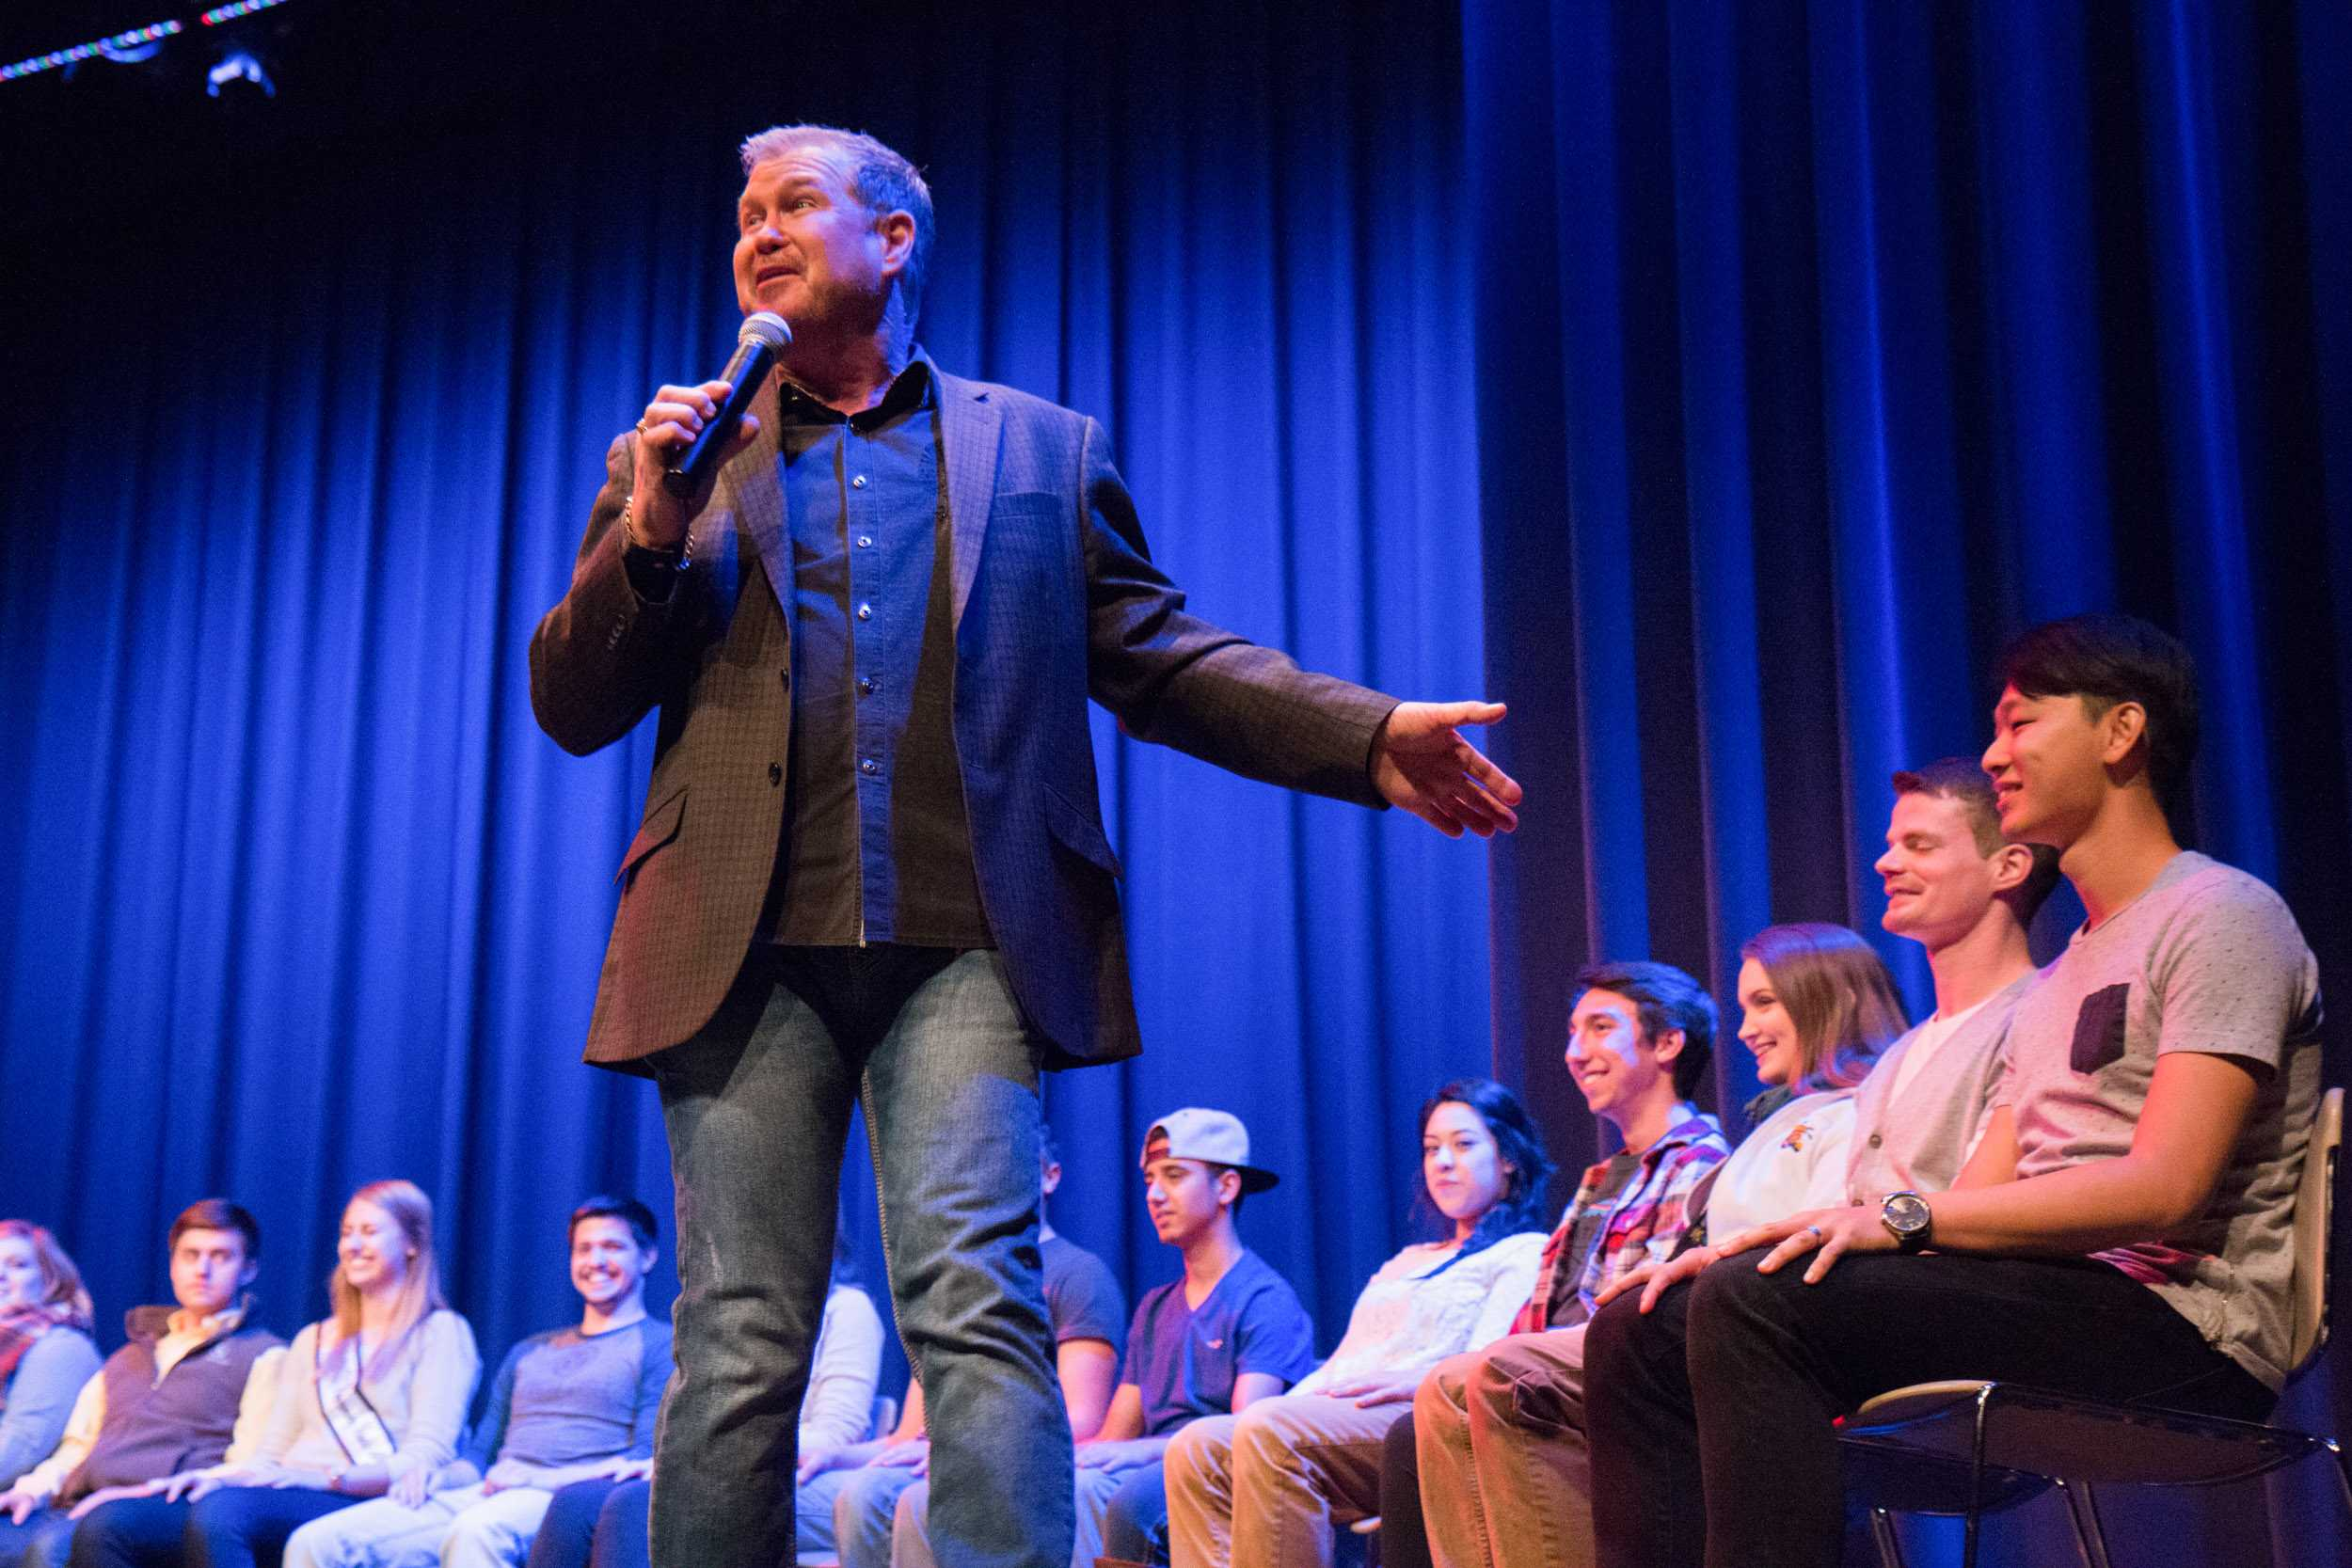 Daniel James, a hypnotist, preparing to hypnotize a group of volunteers Thursday night at the CAC Theater.